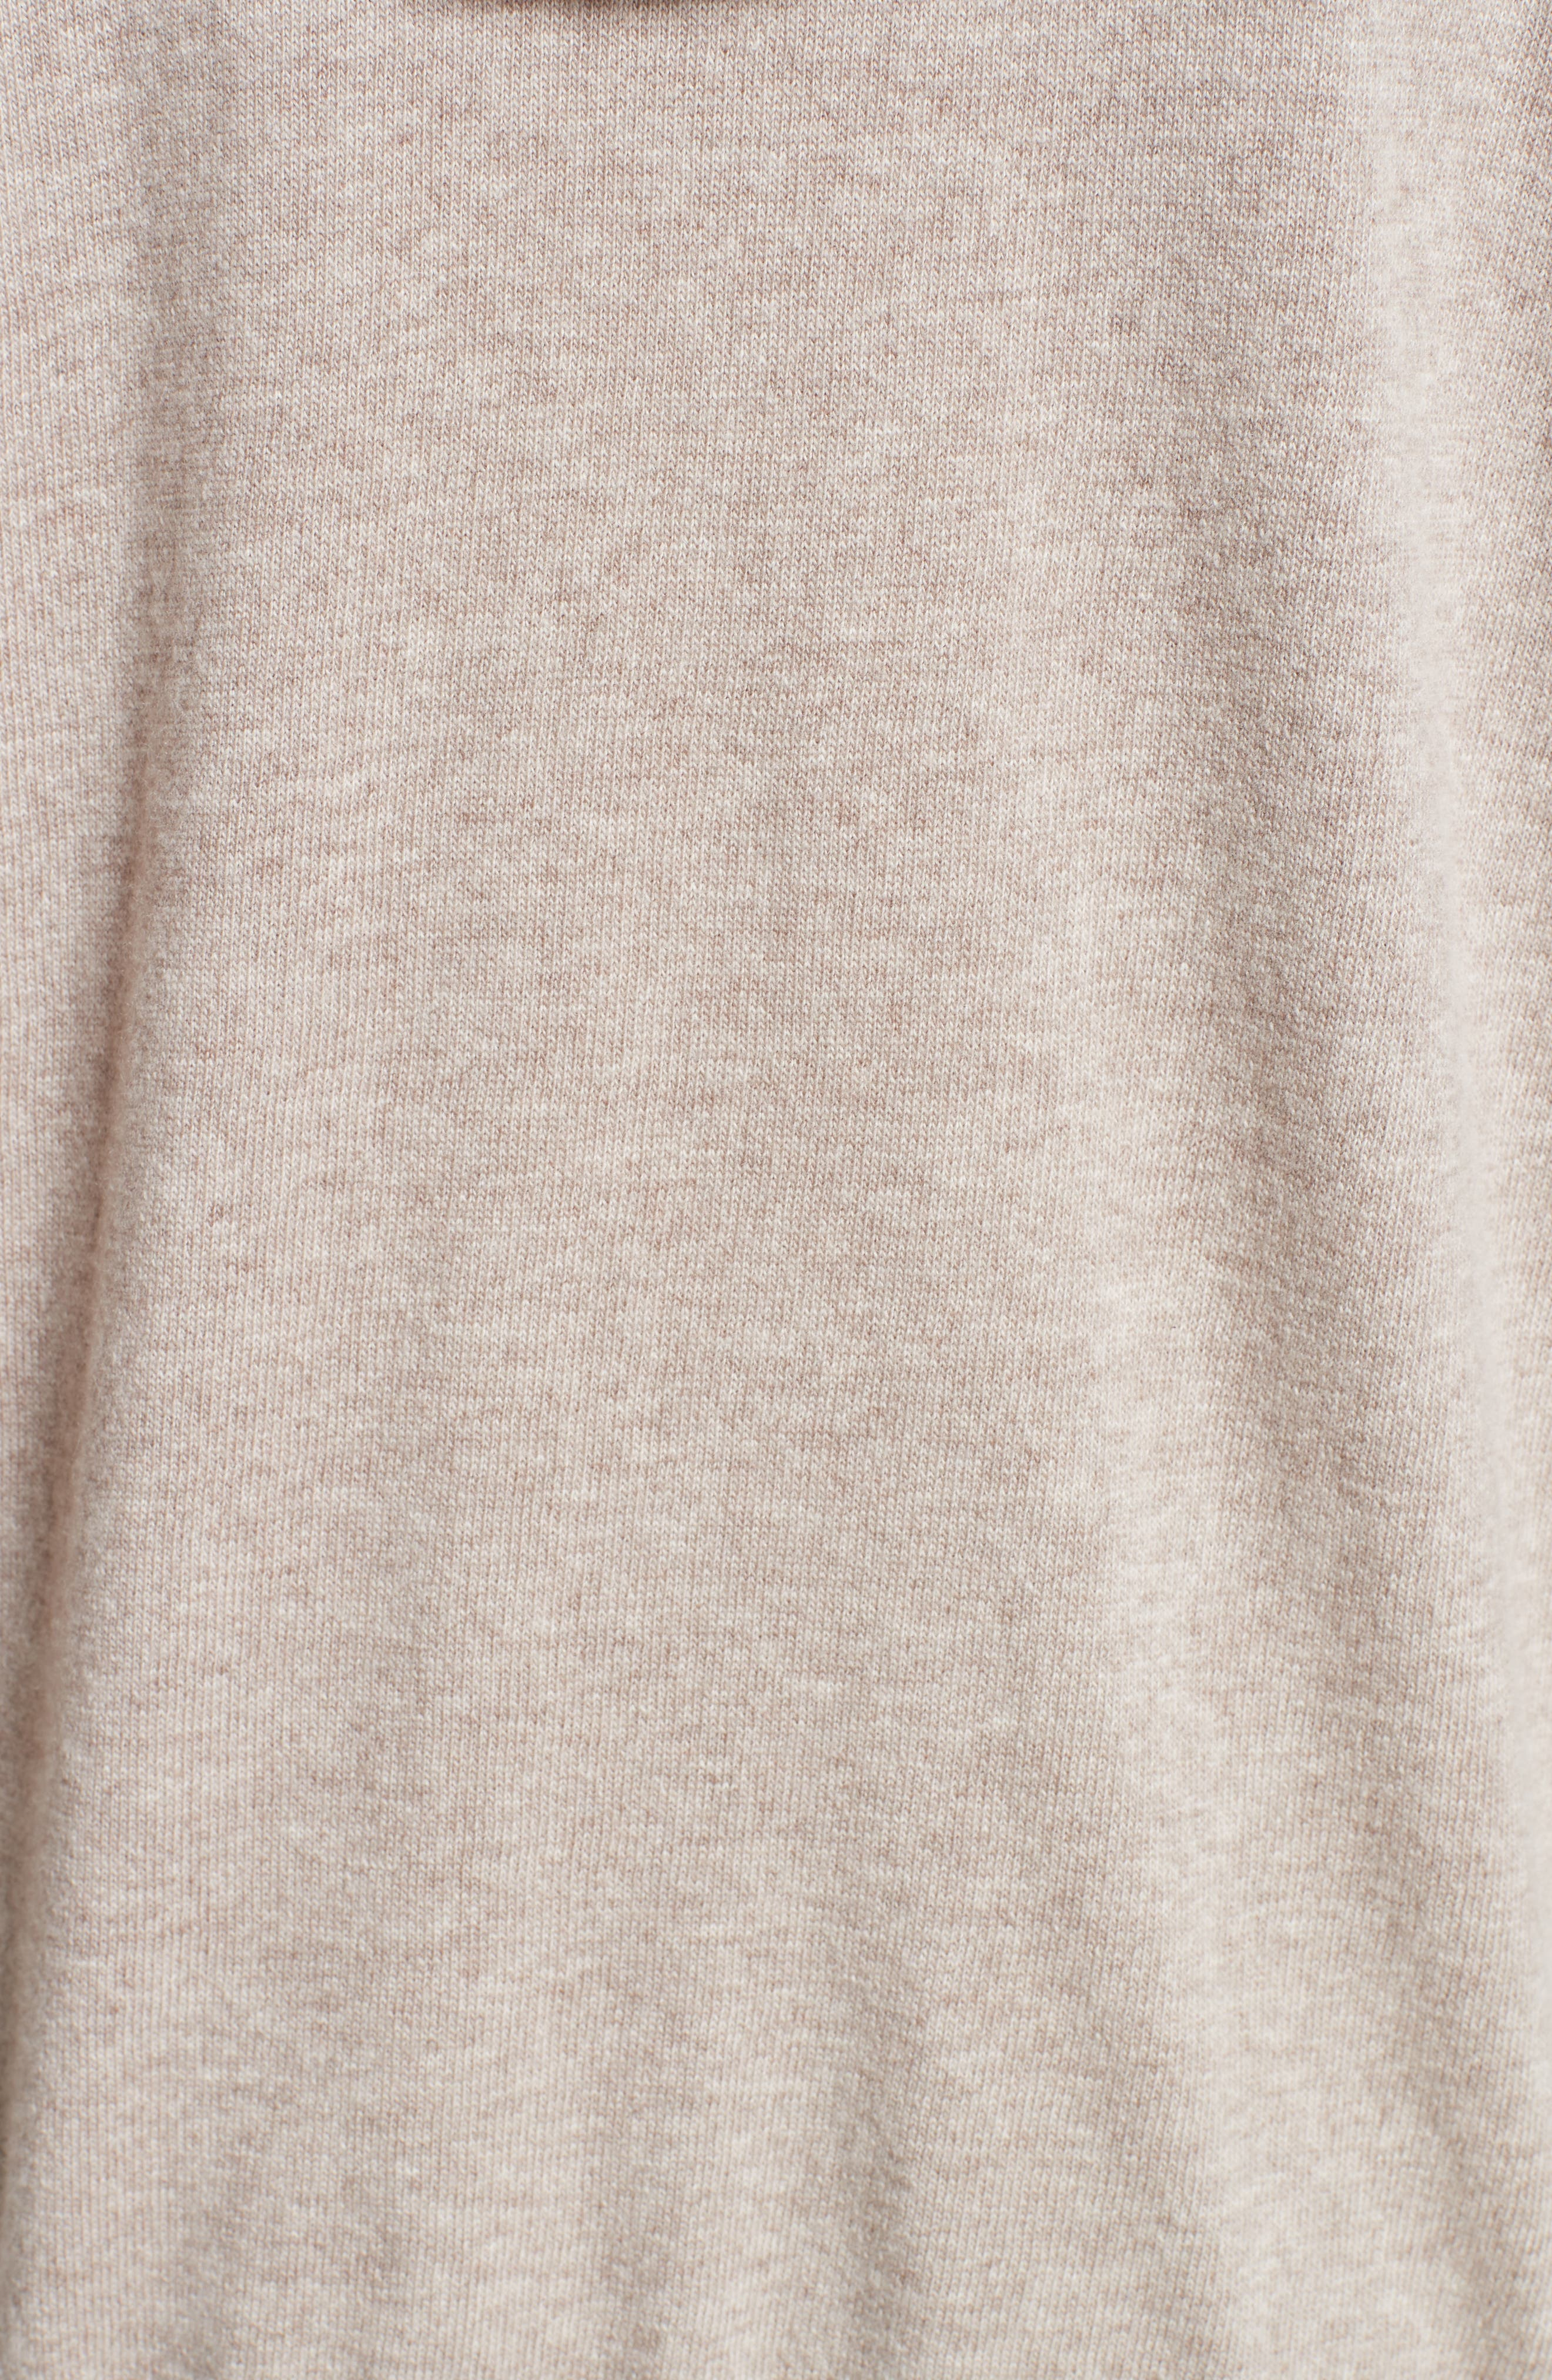 Nitra Wool & Cashmere Hooded Sweater,                             Alternate thumbnail 5, color,